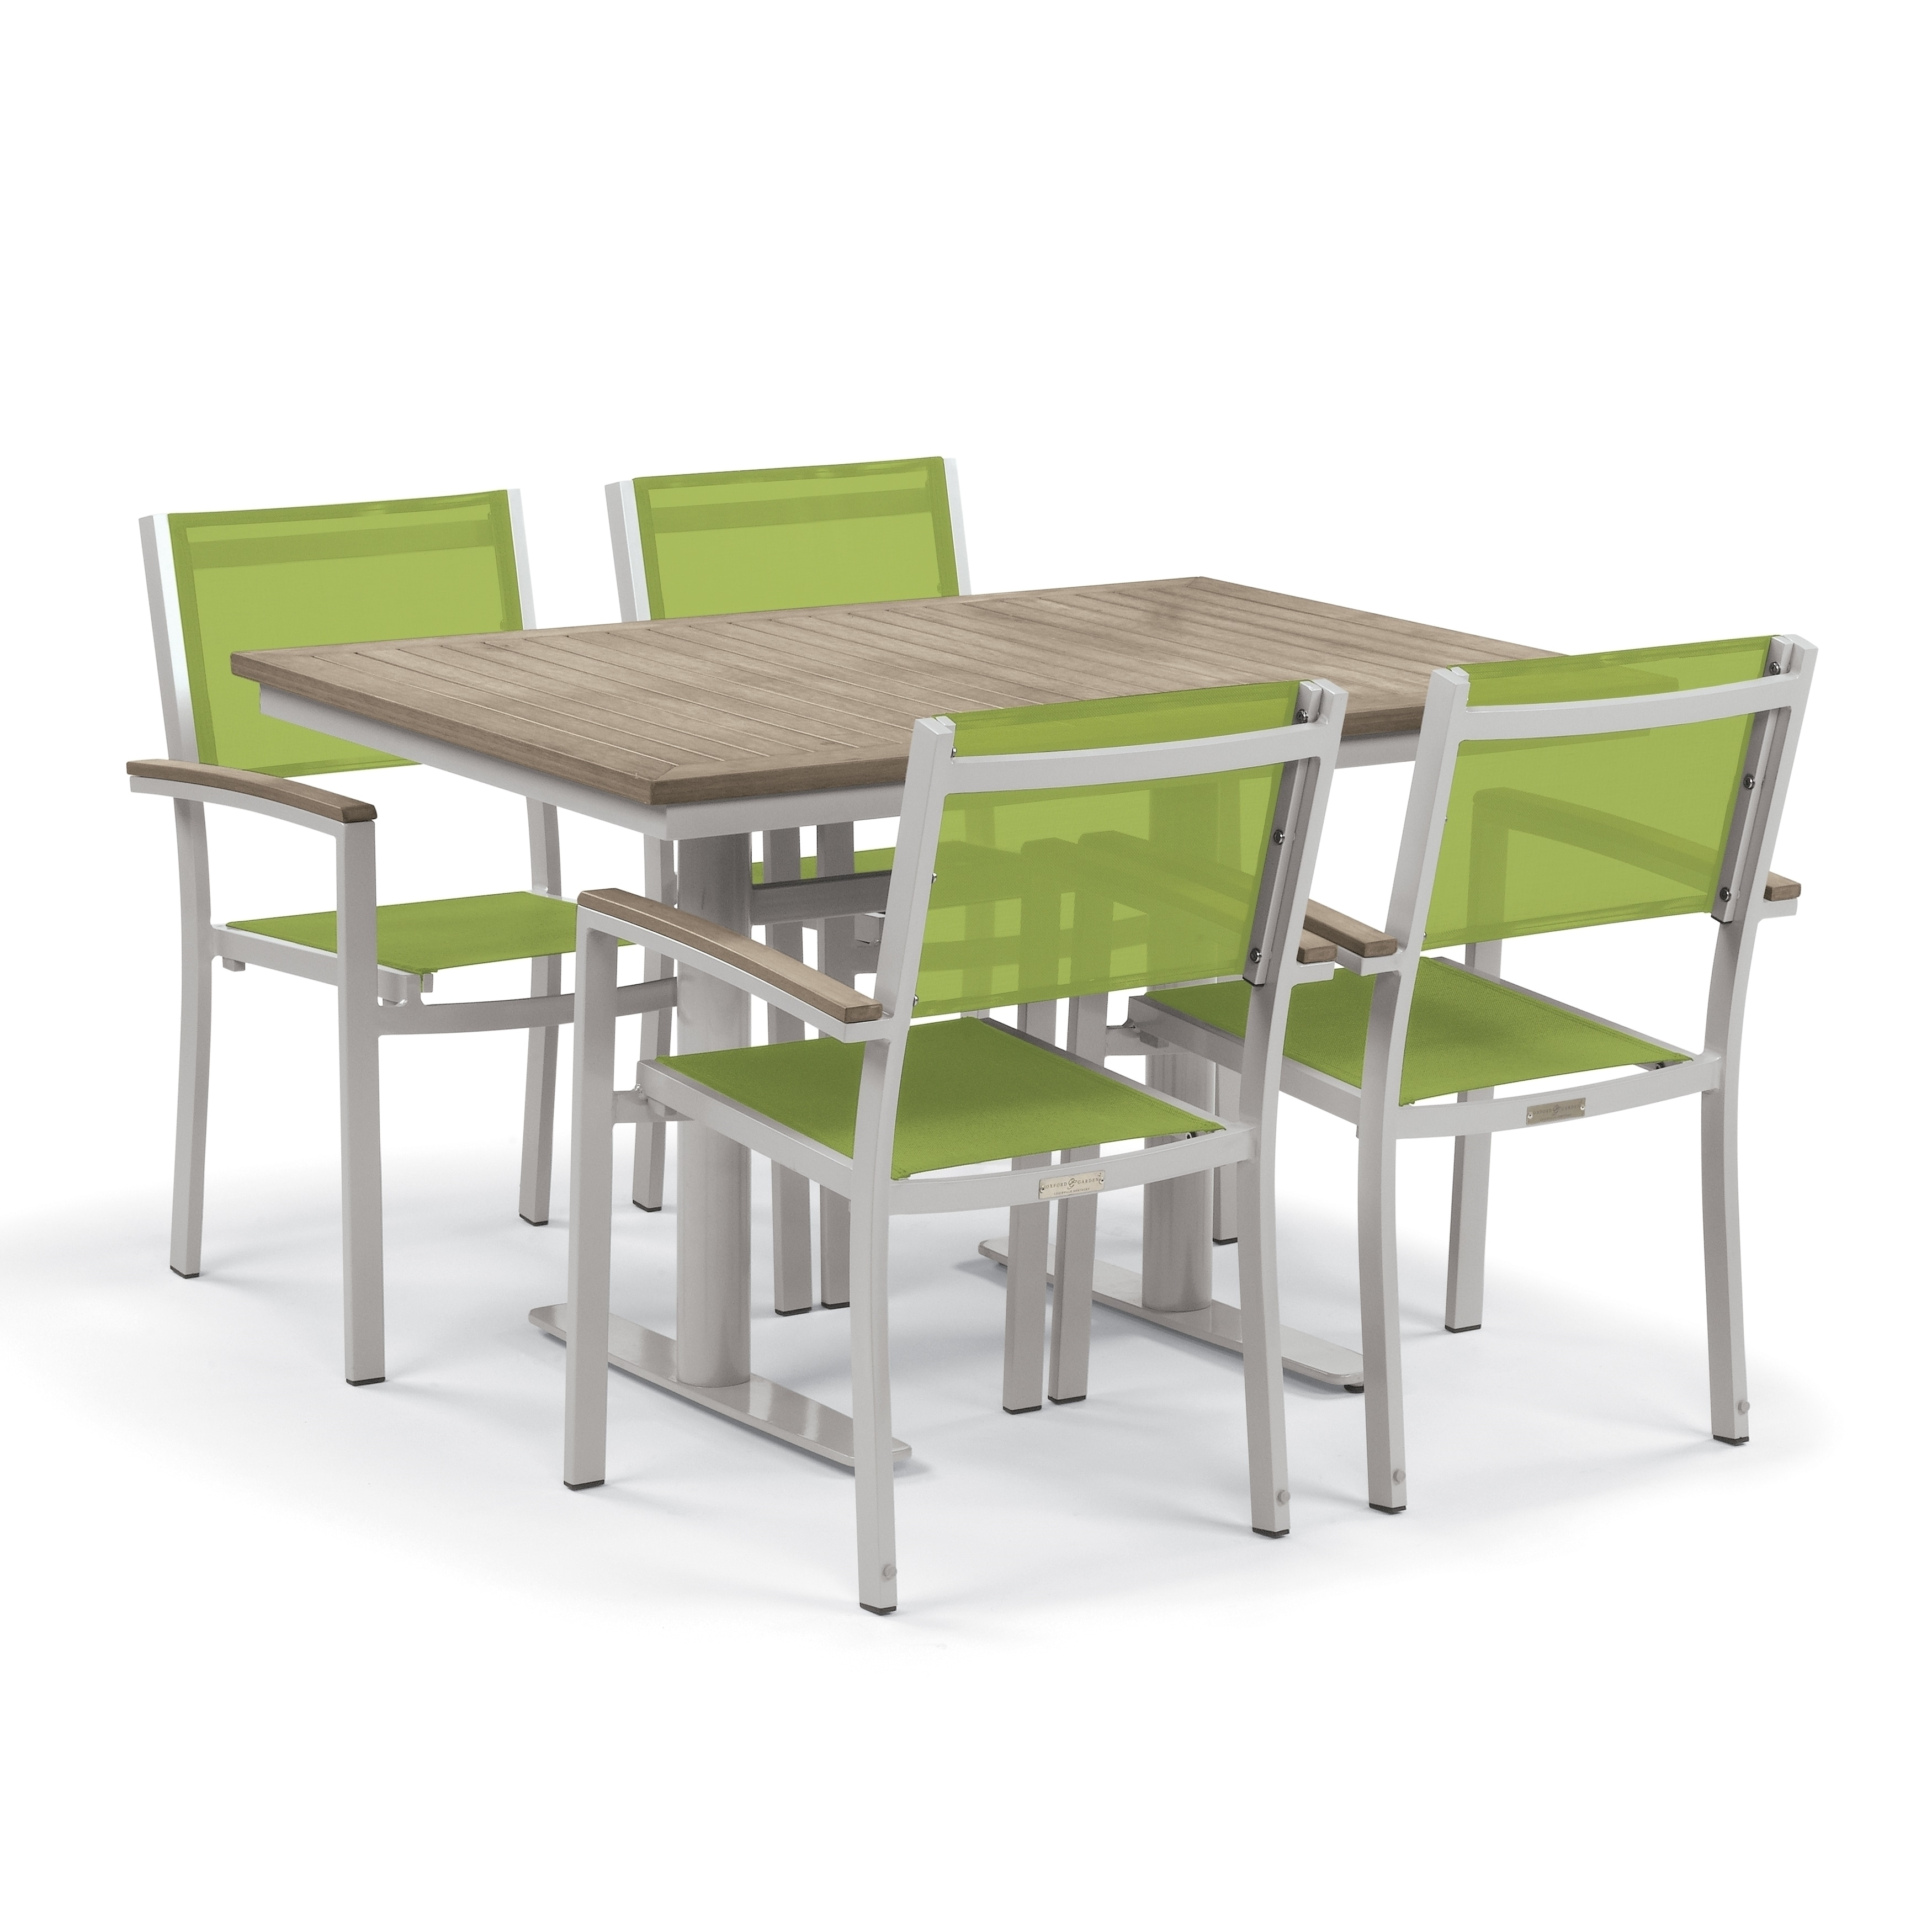 Shop oxford garden travira 5 piece bistro set with 34 inch x 48 inch vintage tekwood table powder coated steel go green sling free shipping today